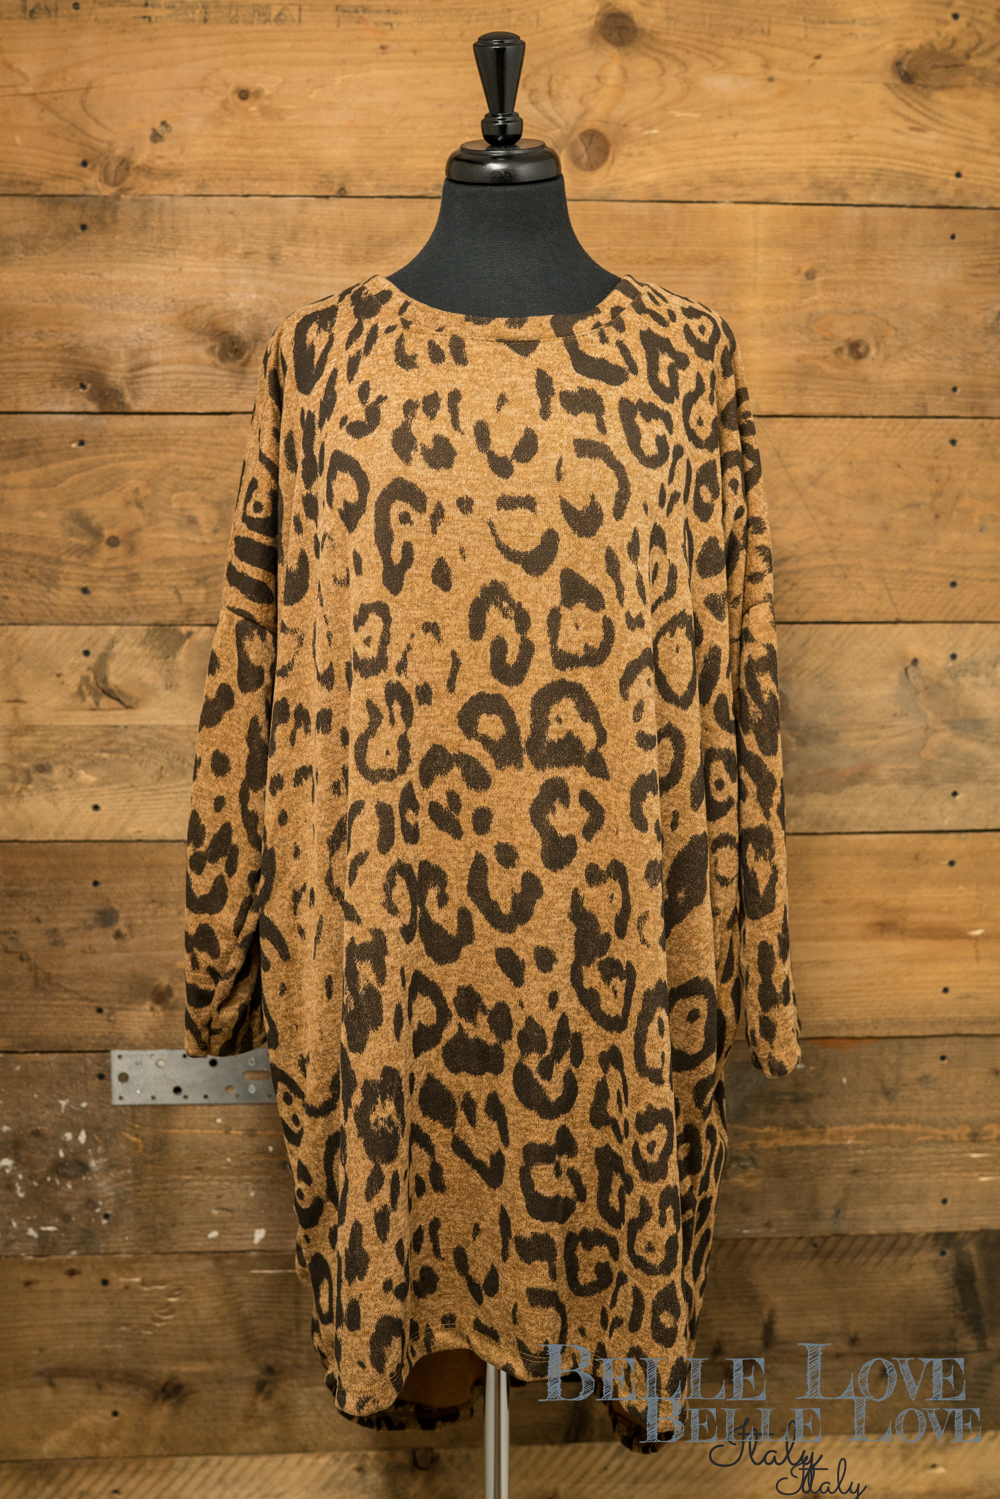 Belle Love Italy Leopard Print Tunic